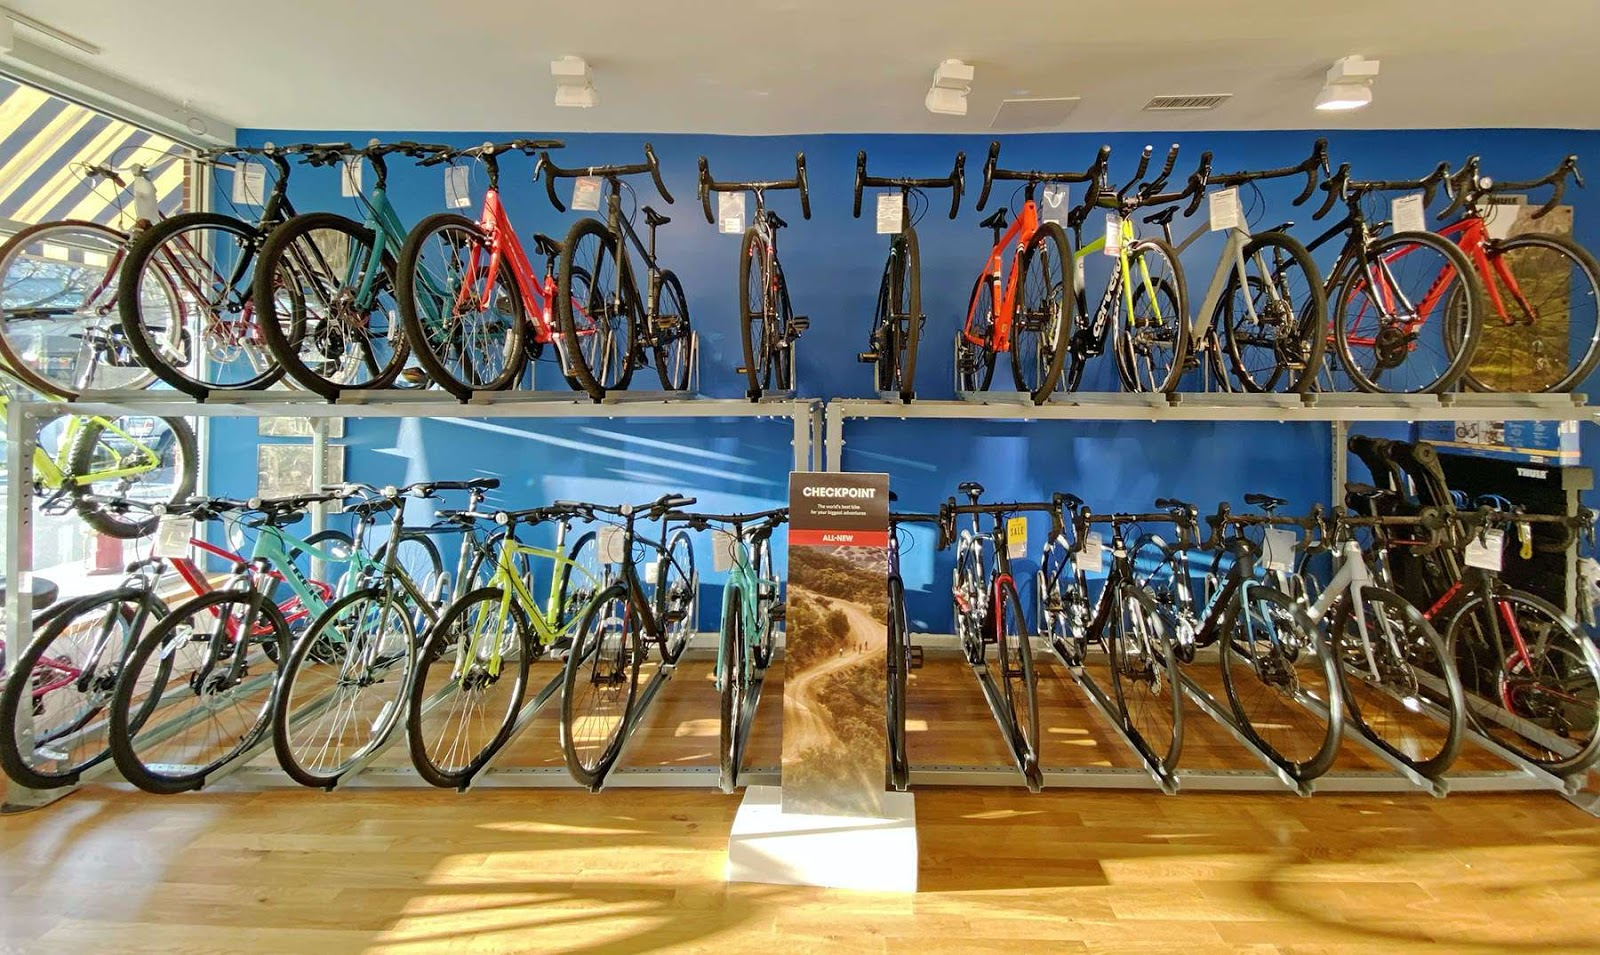 An assortment of colorful bikes on shelves in a bike shop.